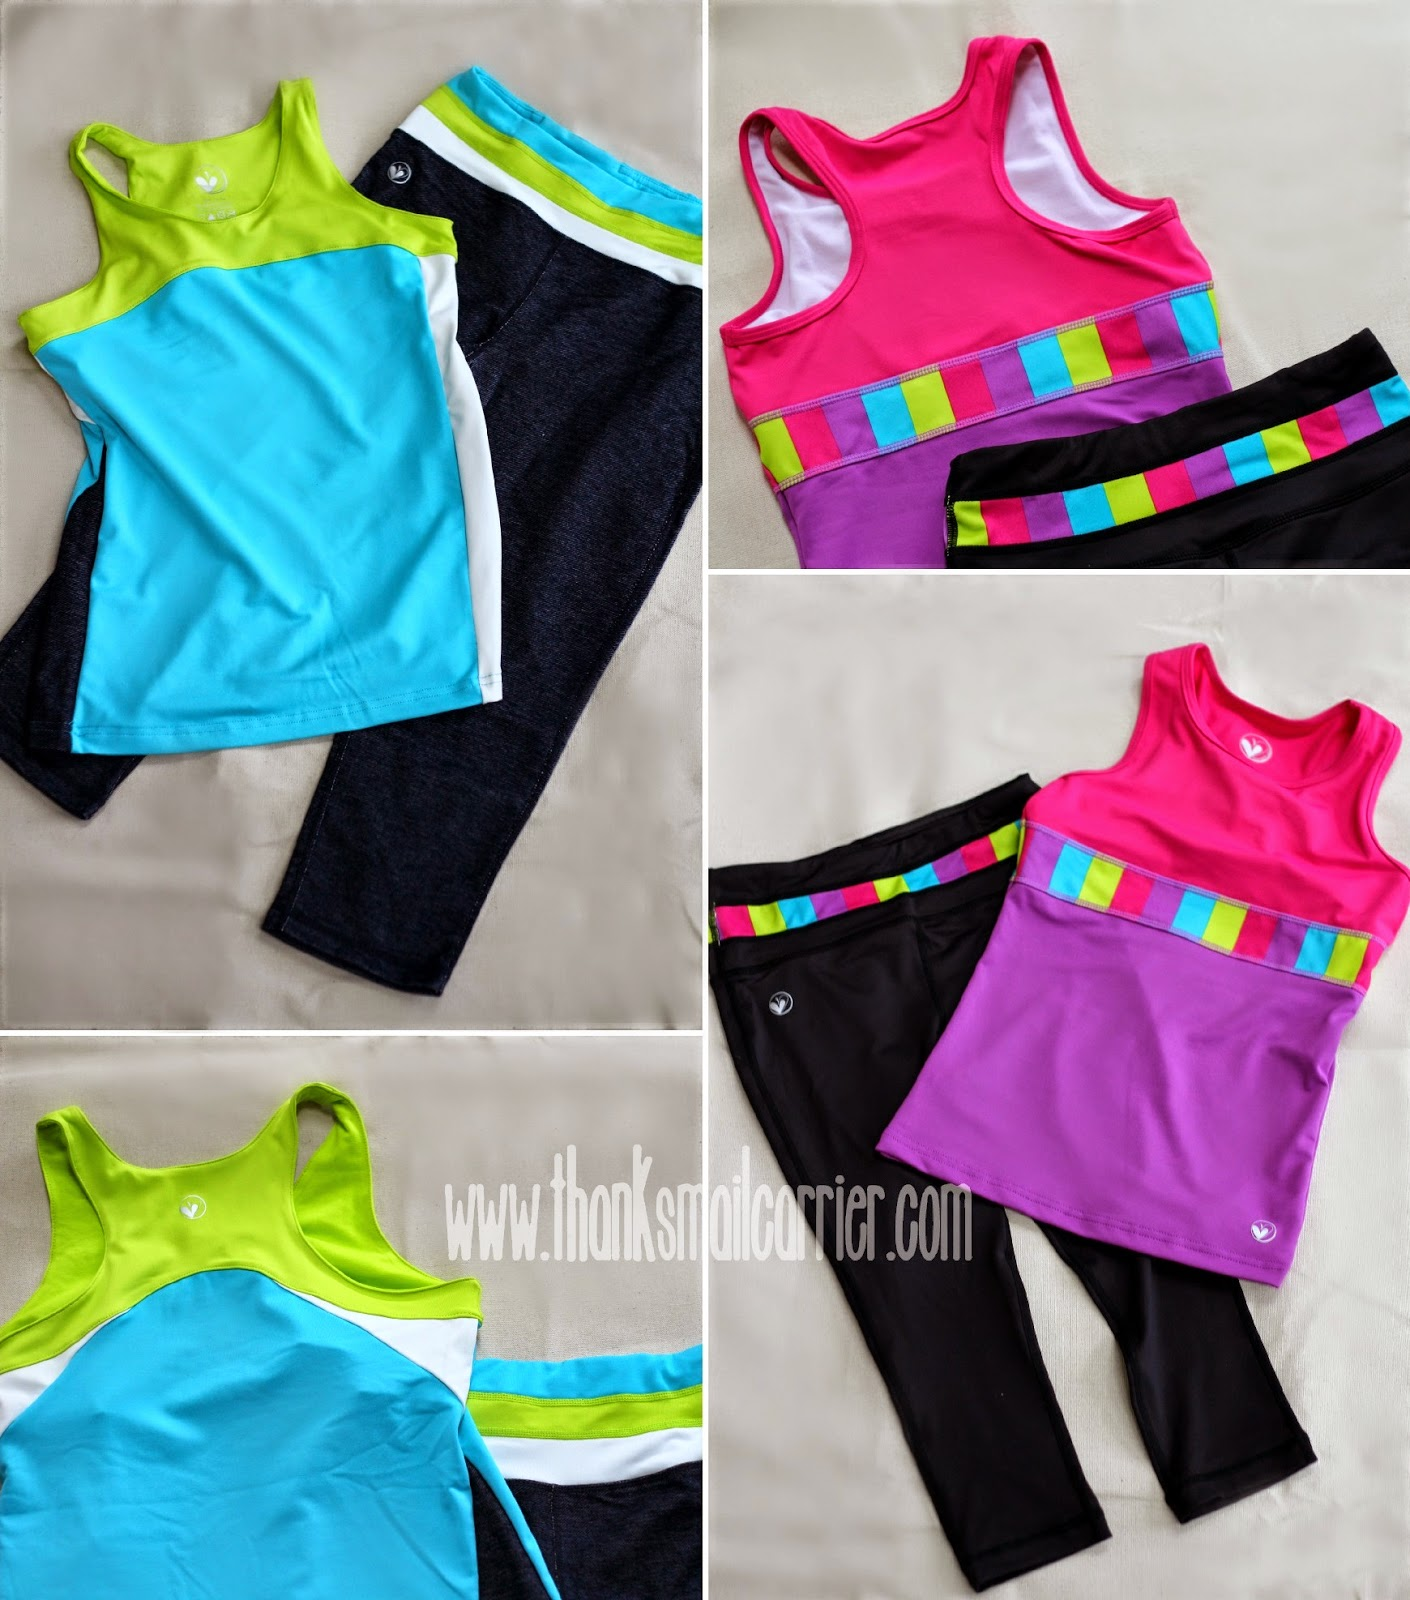 Limeapple athletic wear